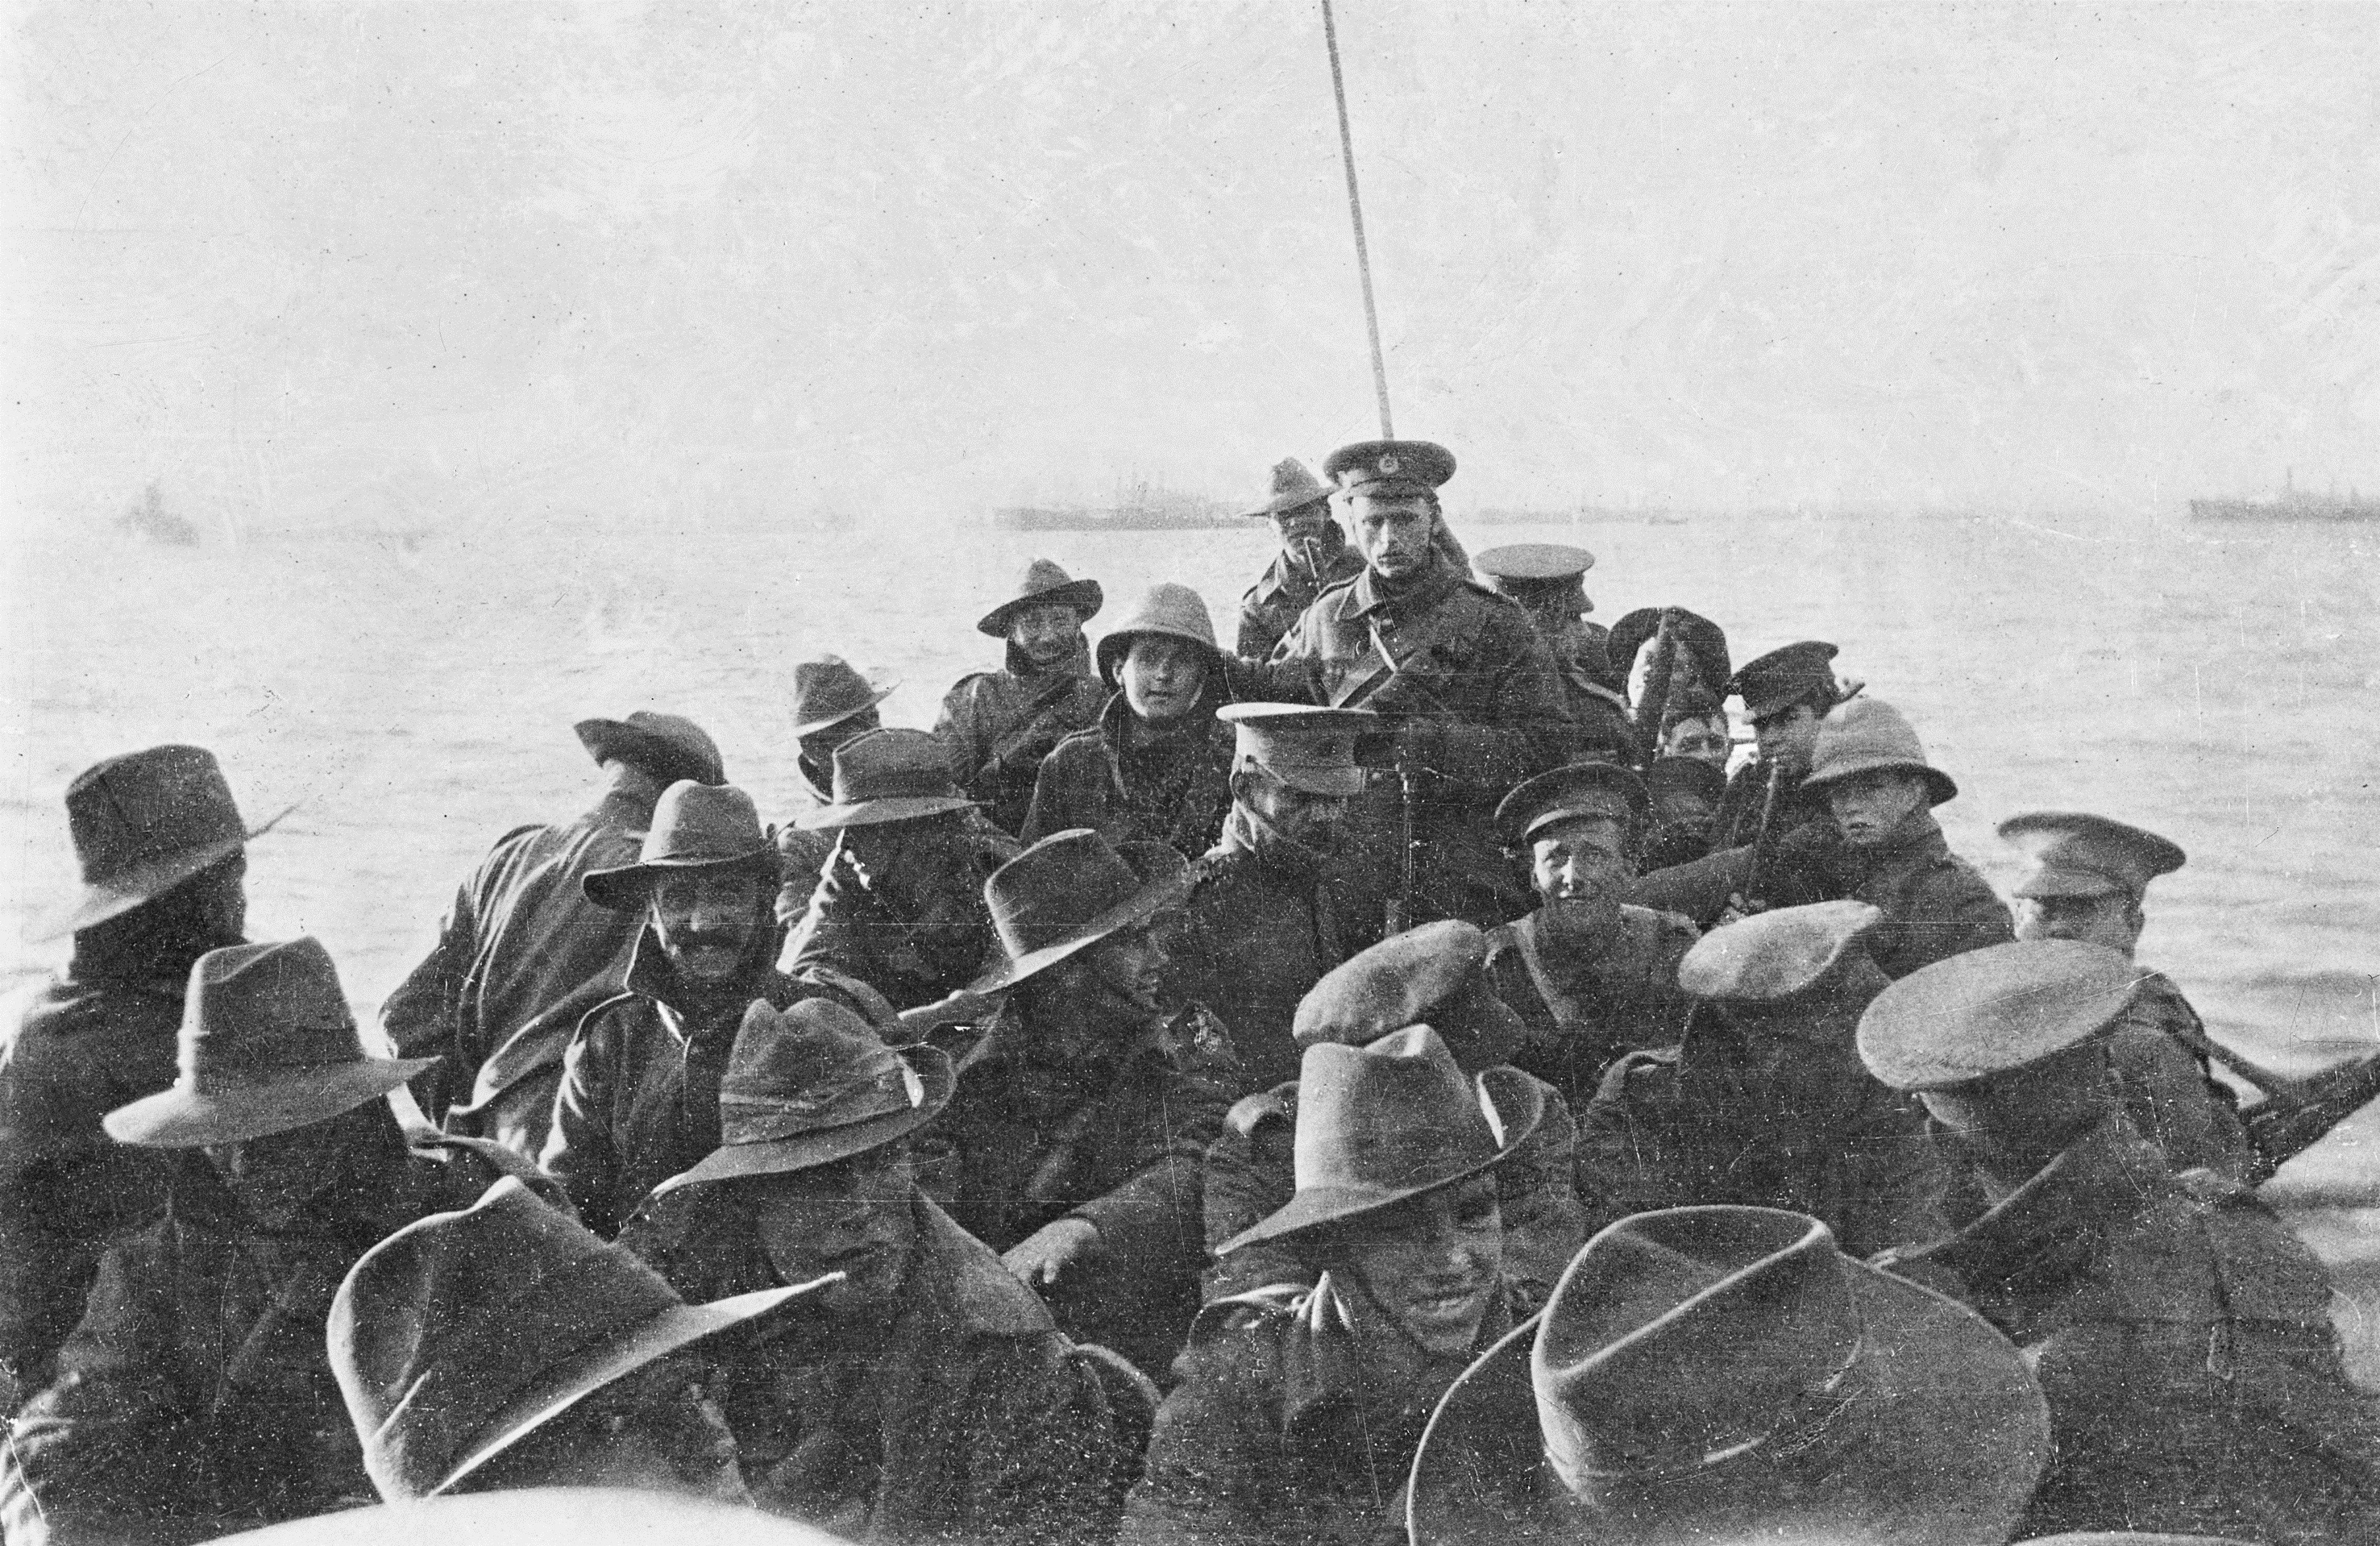 Figure 2: Unidentified men from the 1st Divisional Signal Company being towed towards Anzac Cove on the morning of 25 April 1915. Image courtesy of the Australian War Memorial.